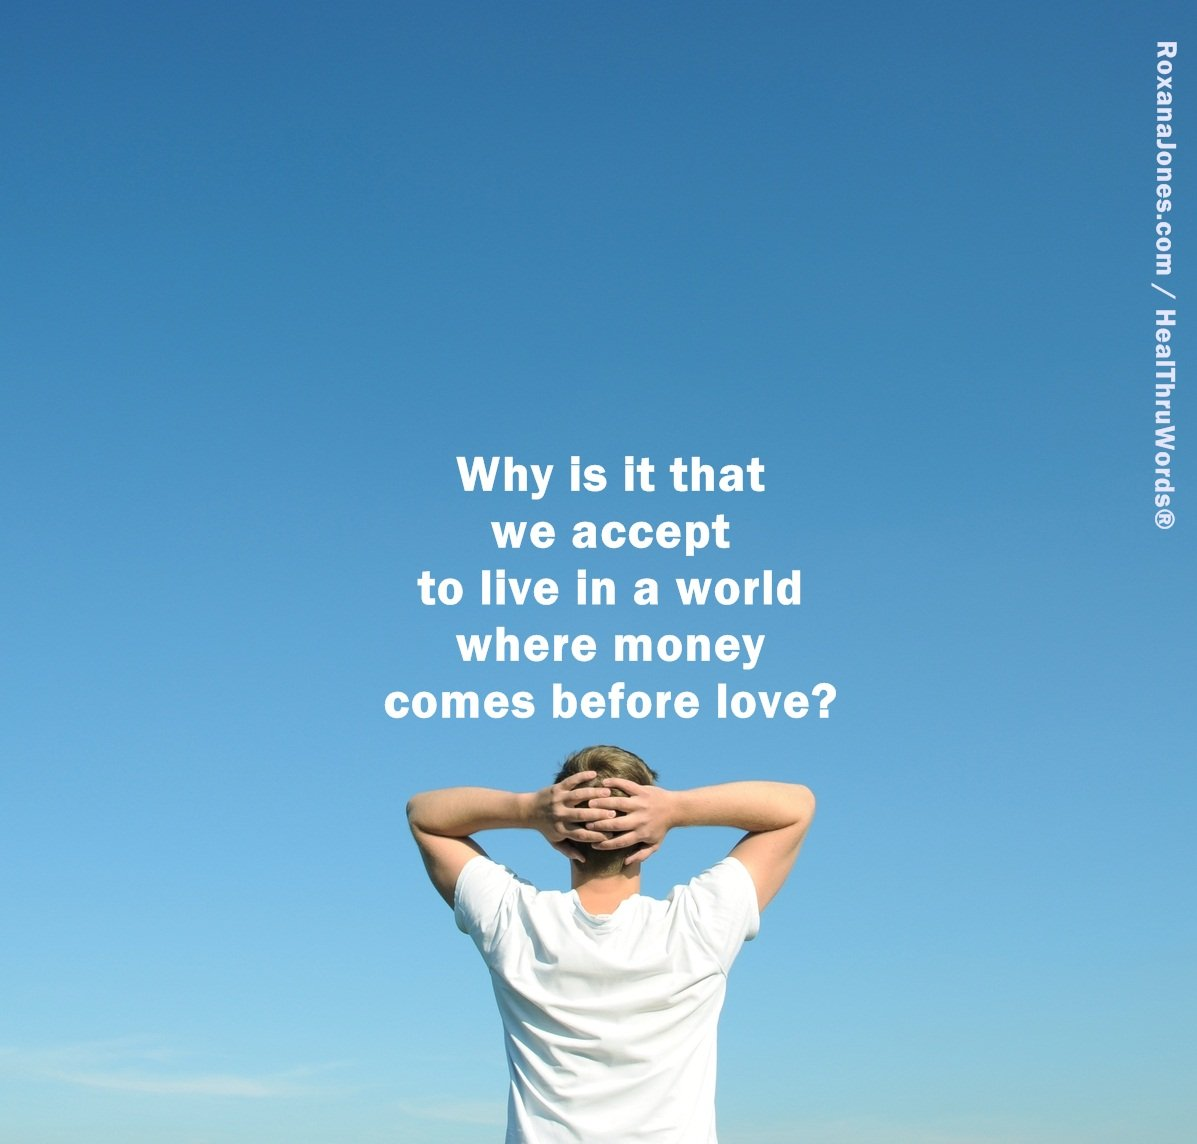 Inspirational Image: Love and Money